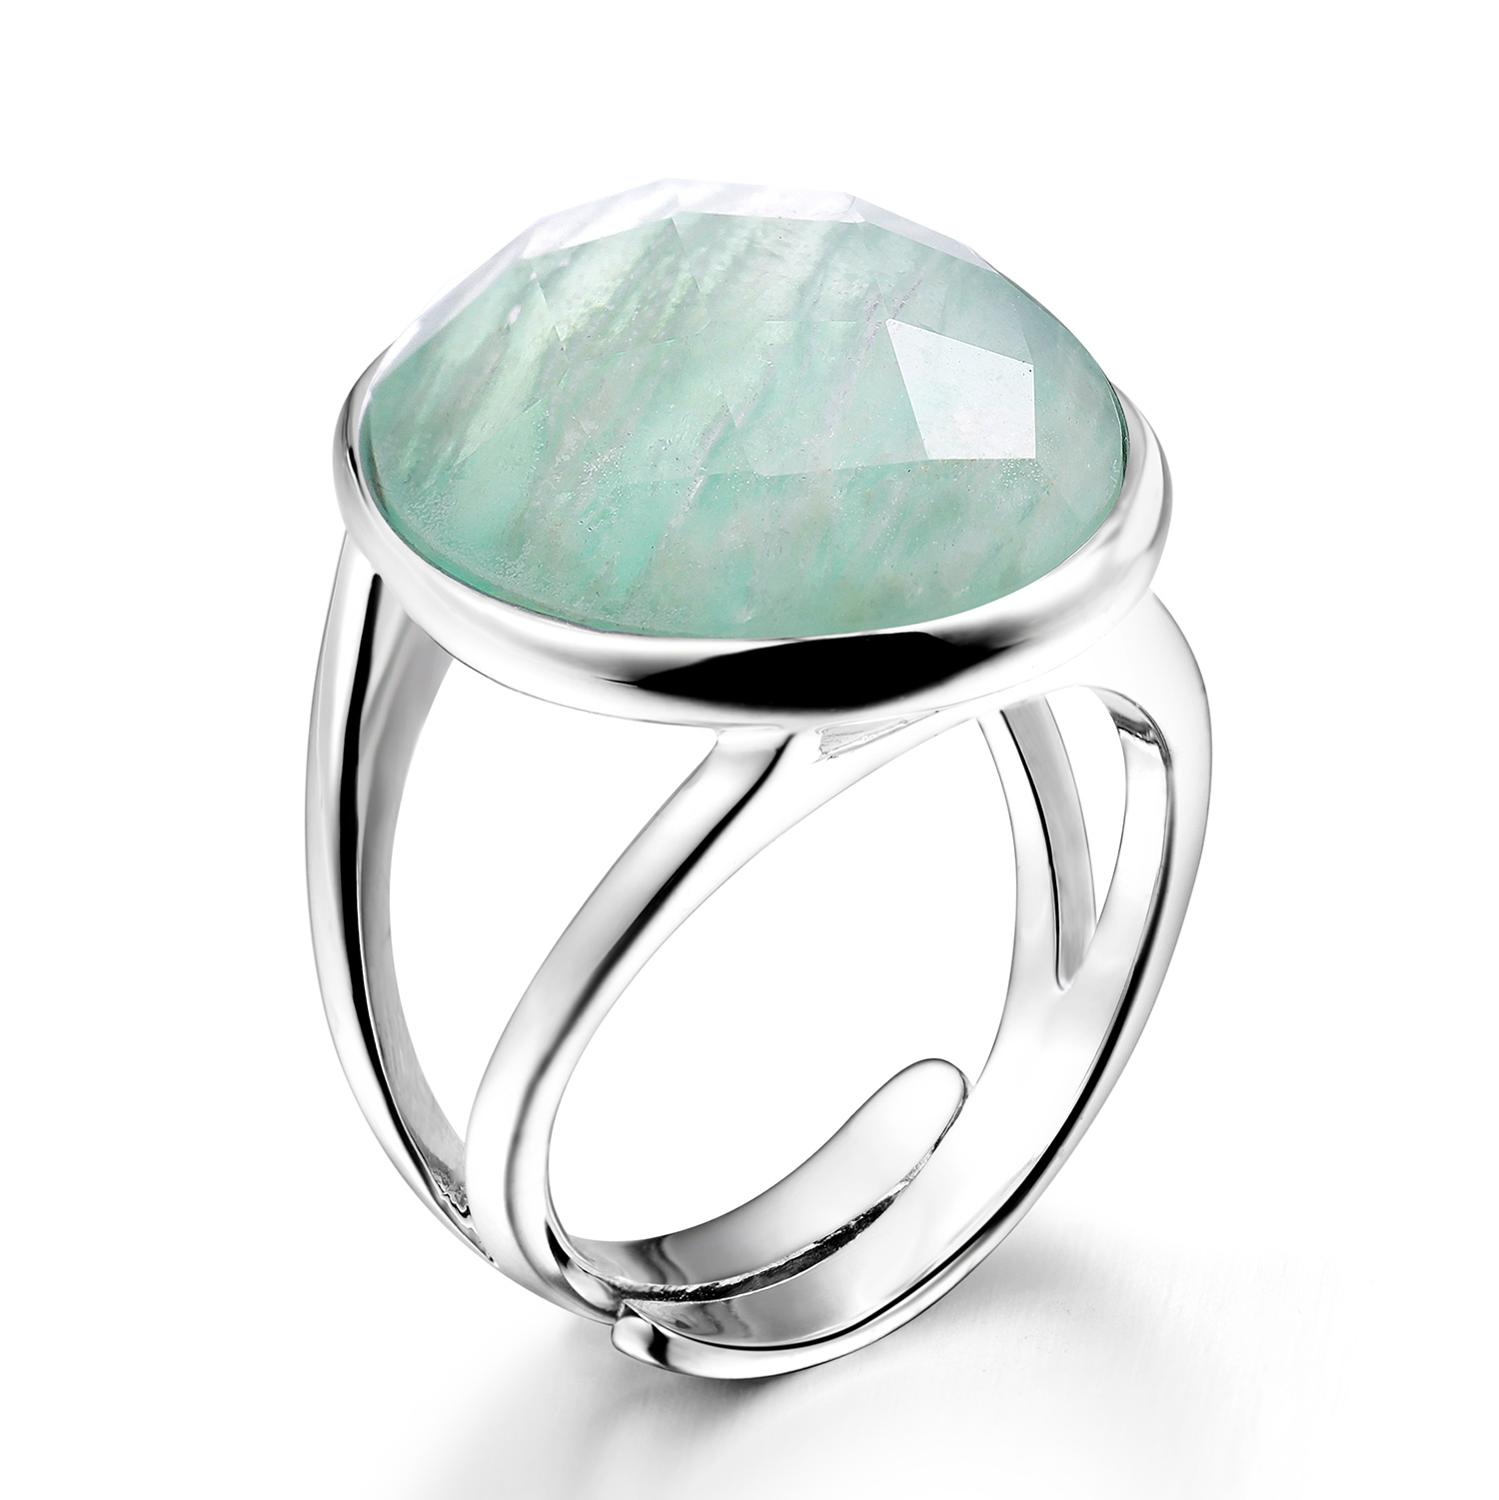 DORMITH real 925 sterling silver gemstone rings natural amazonite rings for women Jewelry rings size can